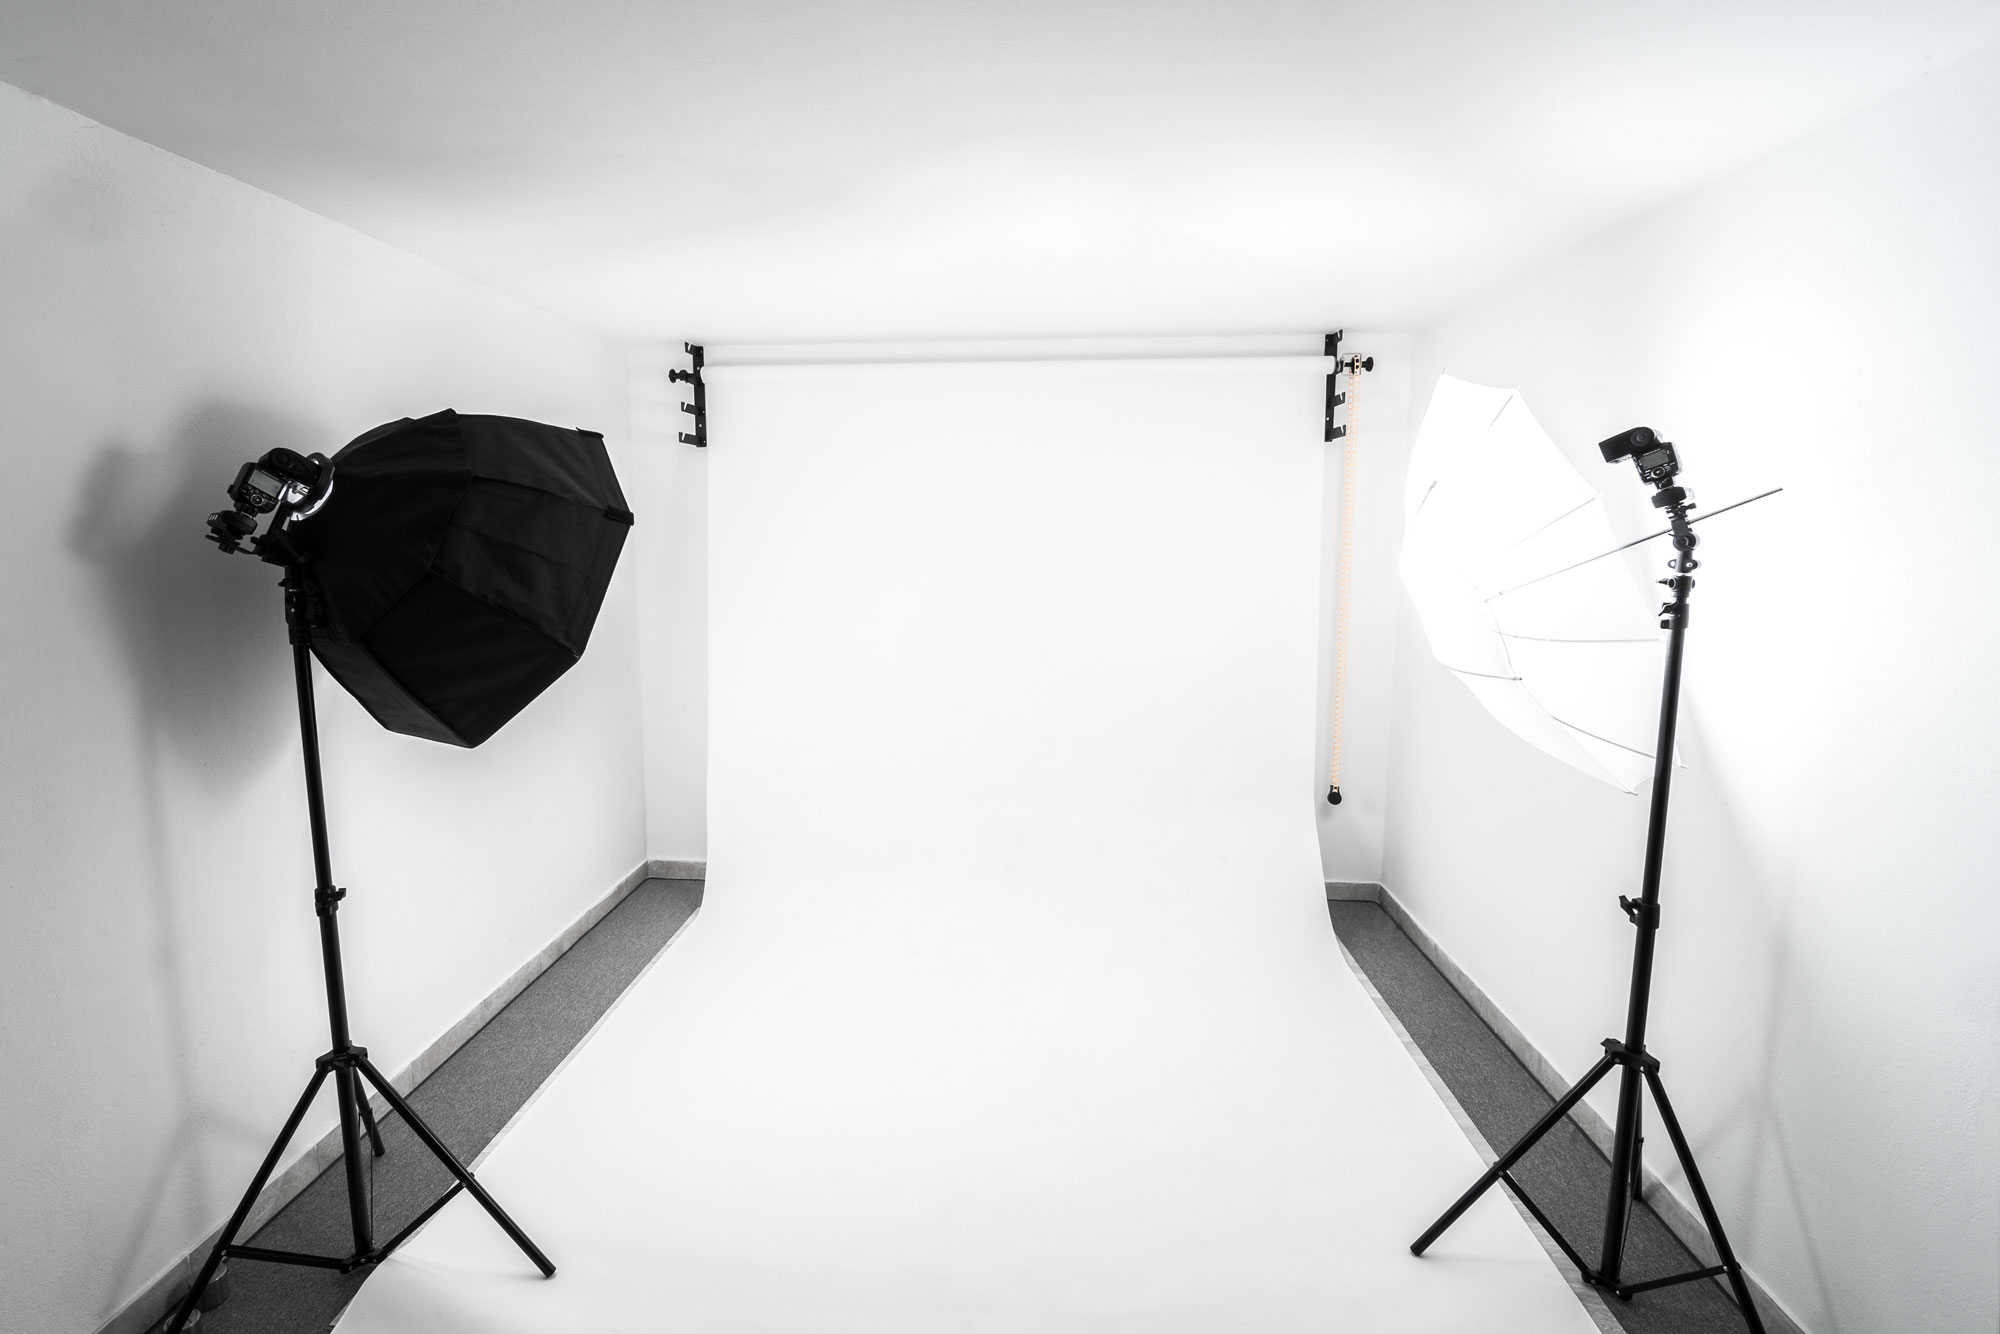 Ideally, you can allocate a space in your home to use as a studio so you don't have to set everything up and tear it all down for each shoot.